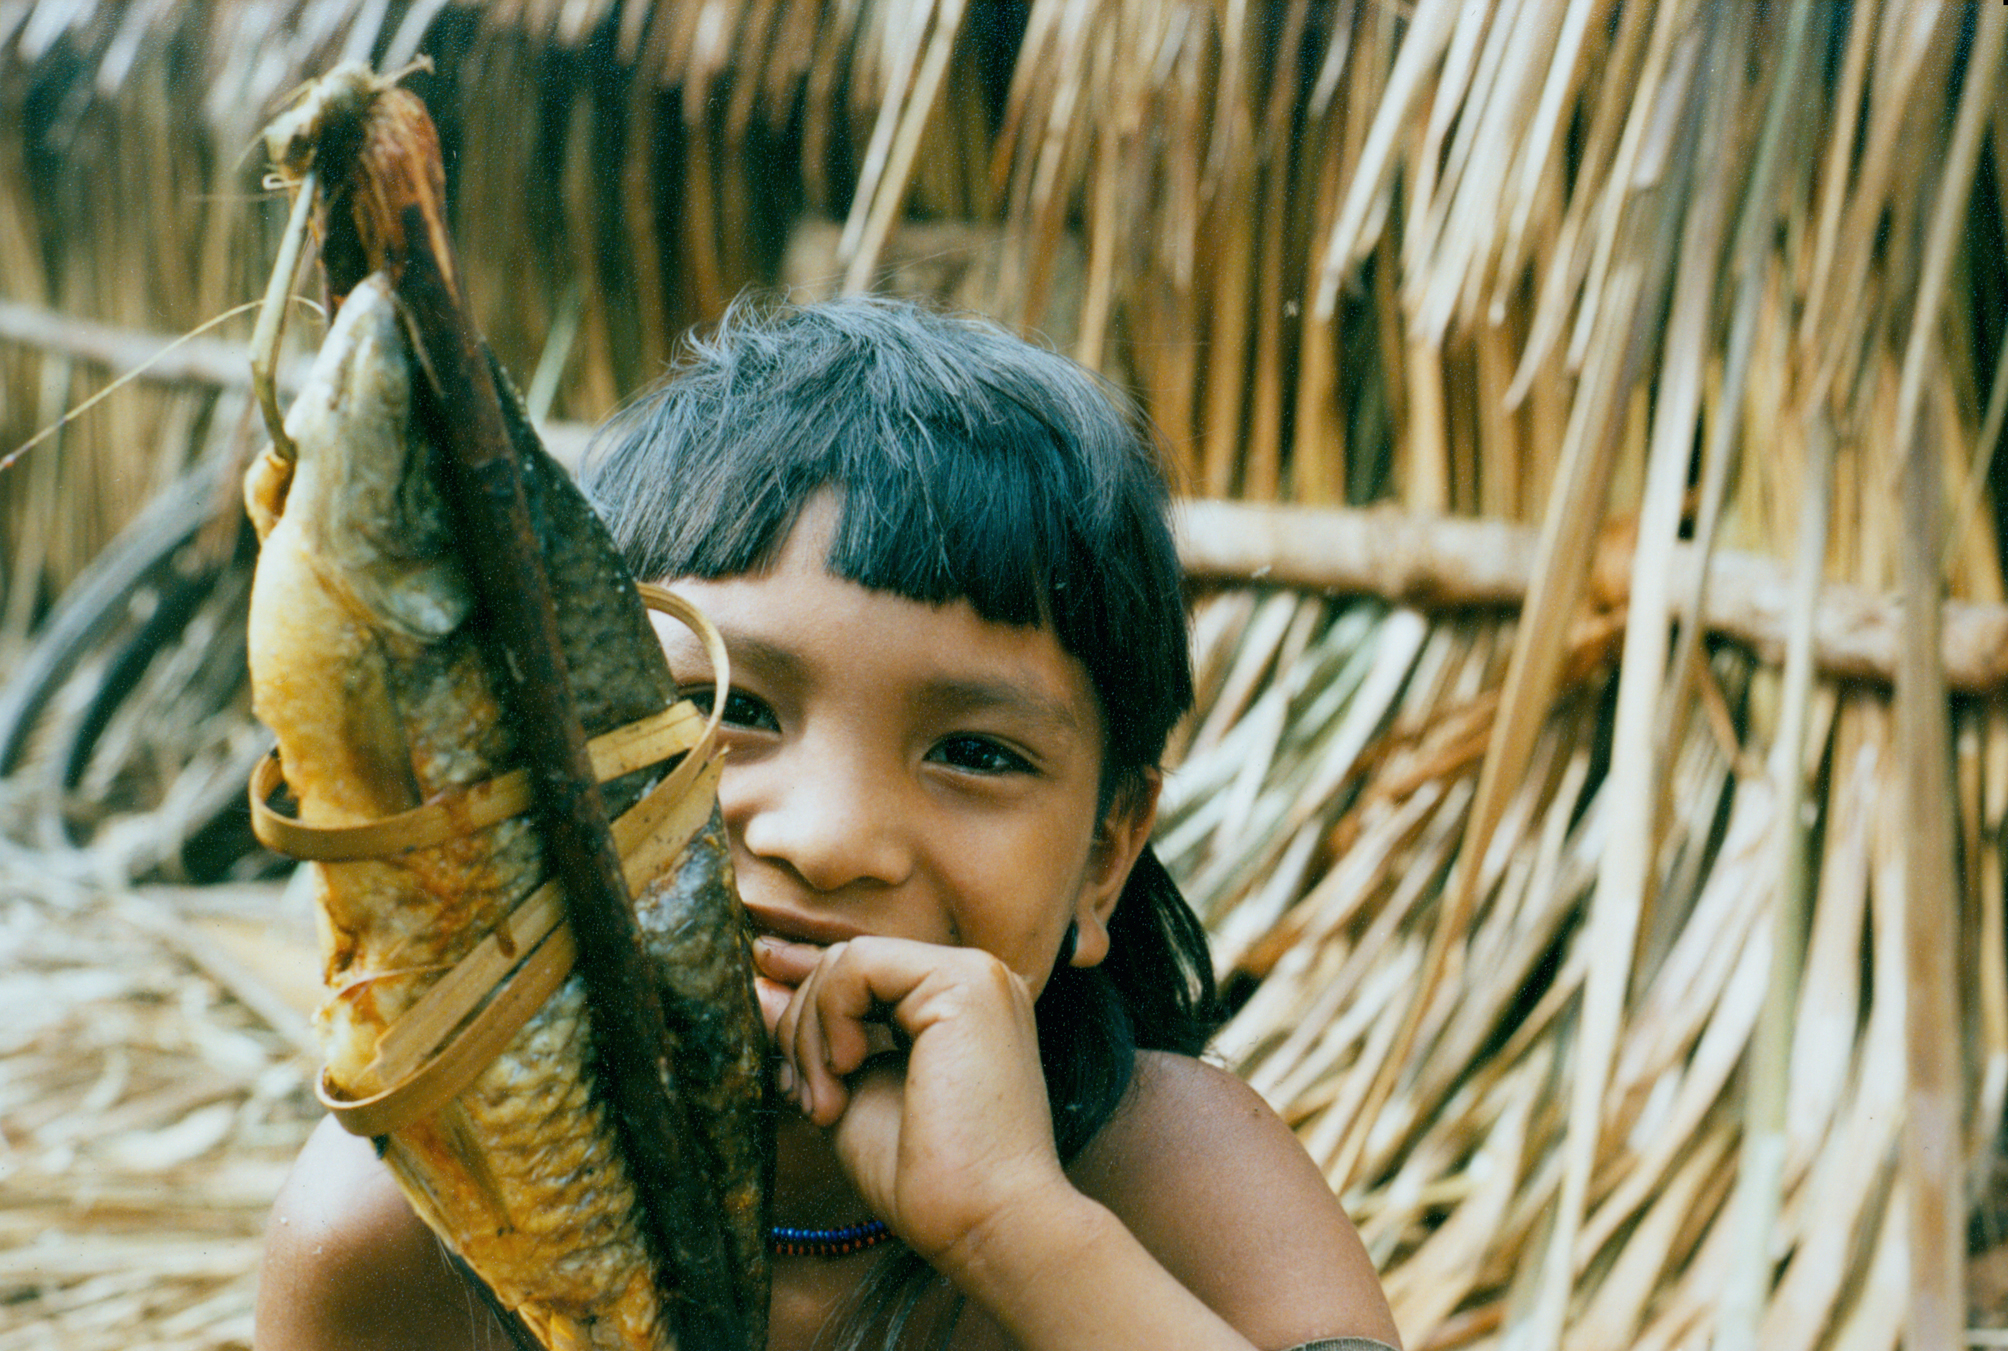 An Enawene Nawe boy shows a smoked fish caught in a dam on the Adowina or Black River, Brazil. The rainforest is being rapidly destroyed by cattle ranchers. © Fiona Watson/Survival